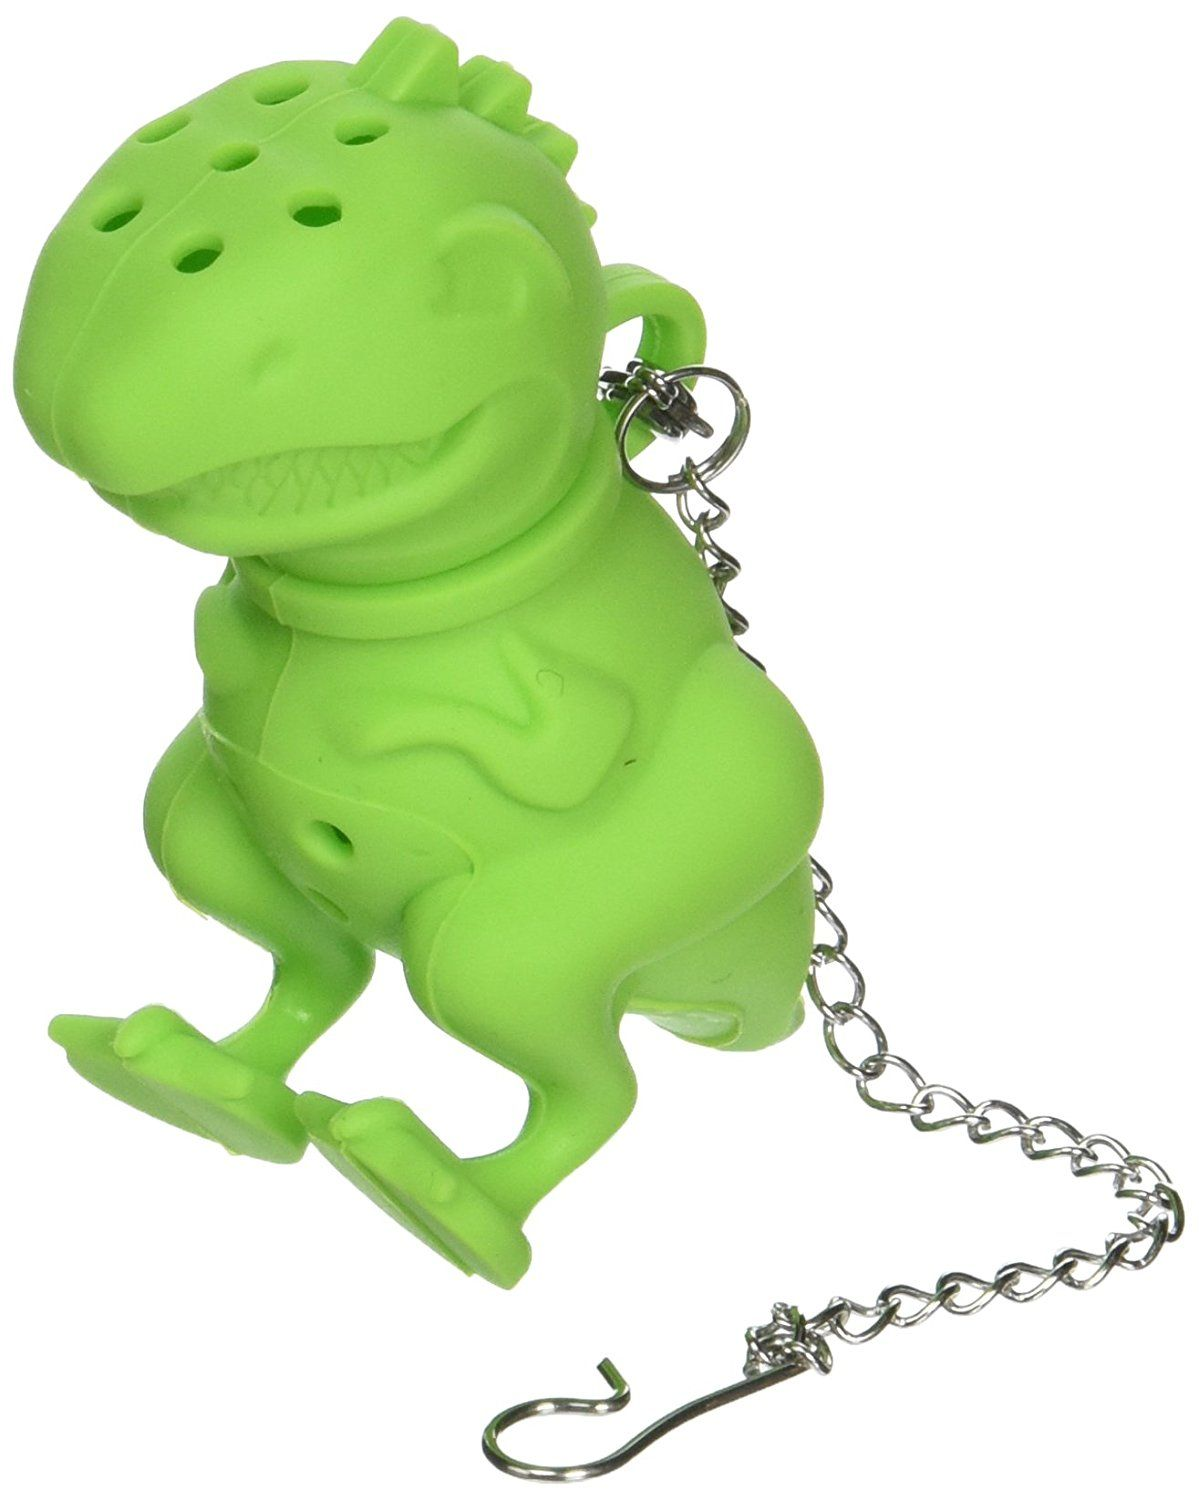 AmazonSmile: DCI Tea Rex Tea Infuser, T Rex Tea Infuser: Tea Ball Strainers: Kitchen & Dining